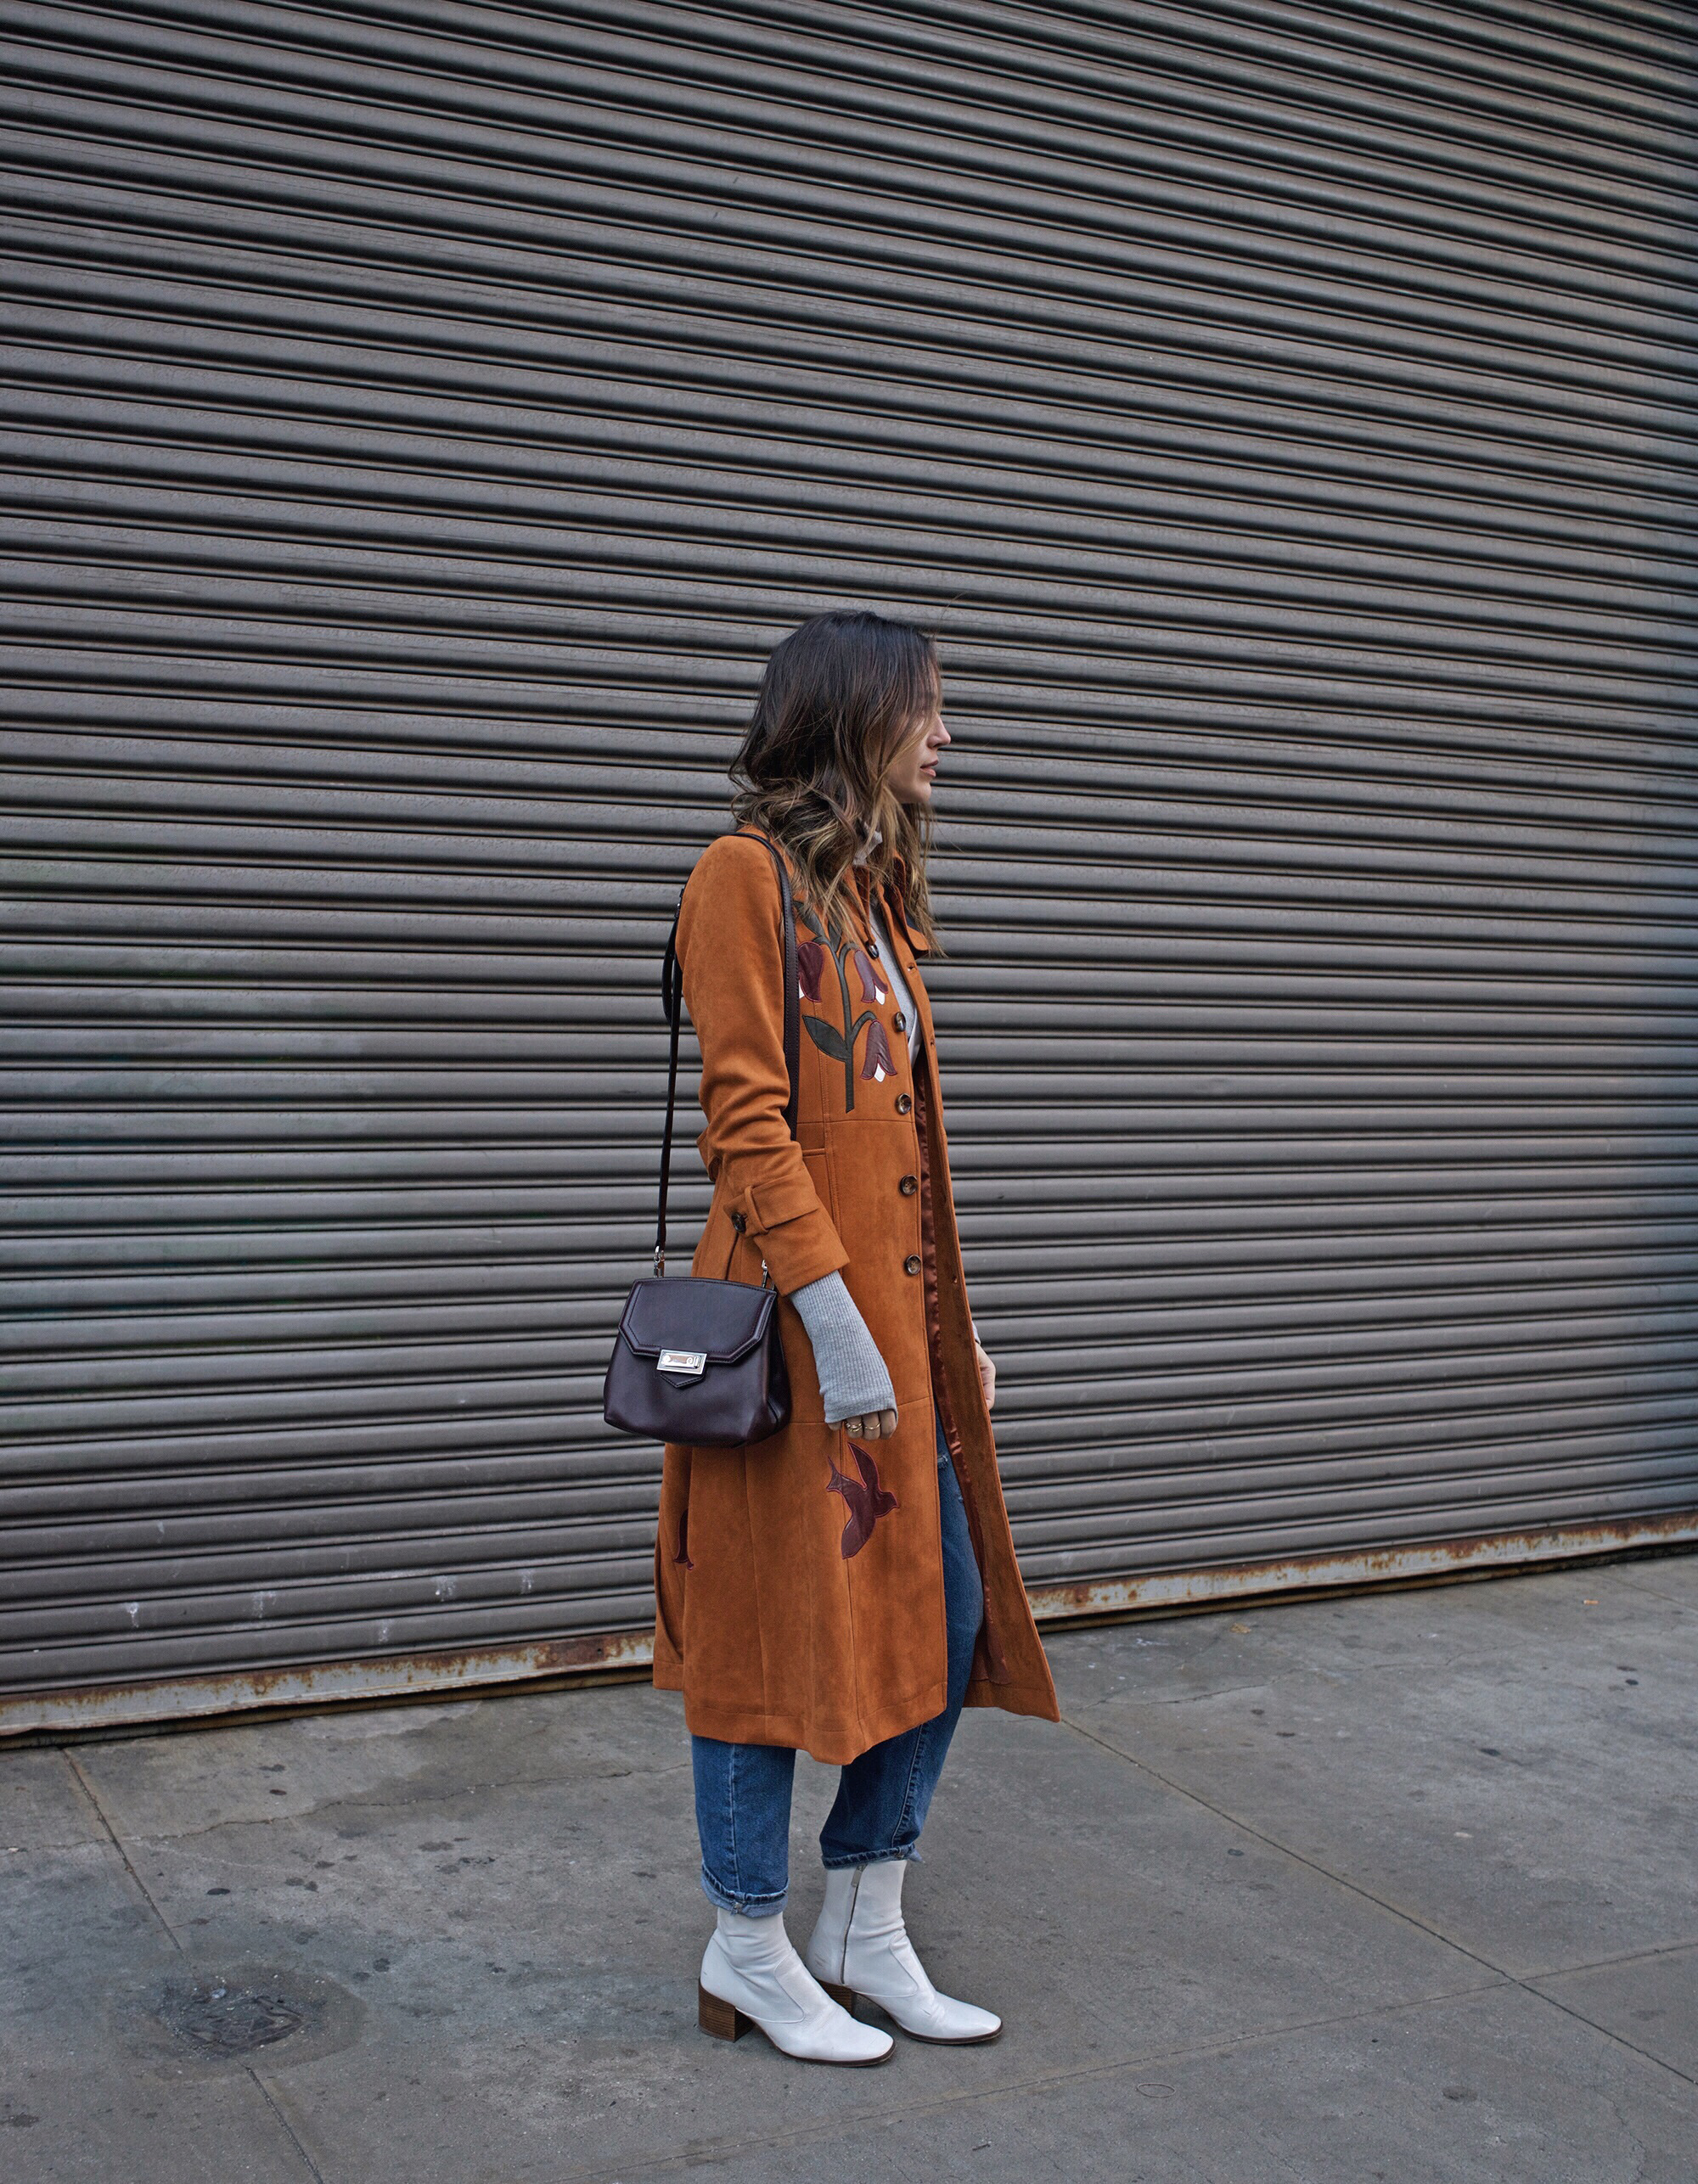 New York Fashion Week Statement Coat